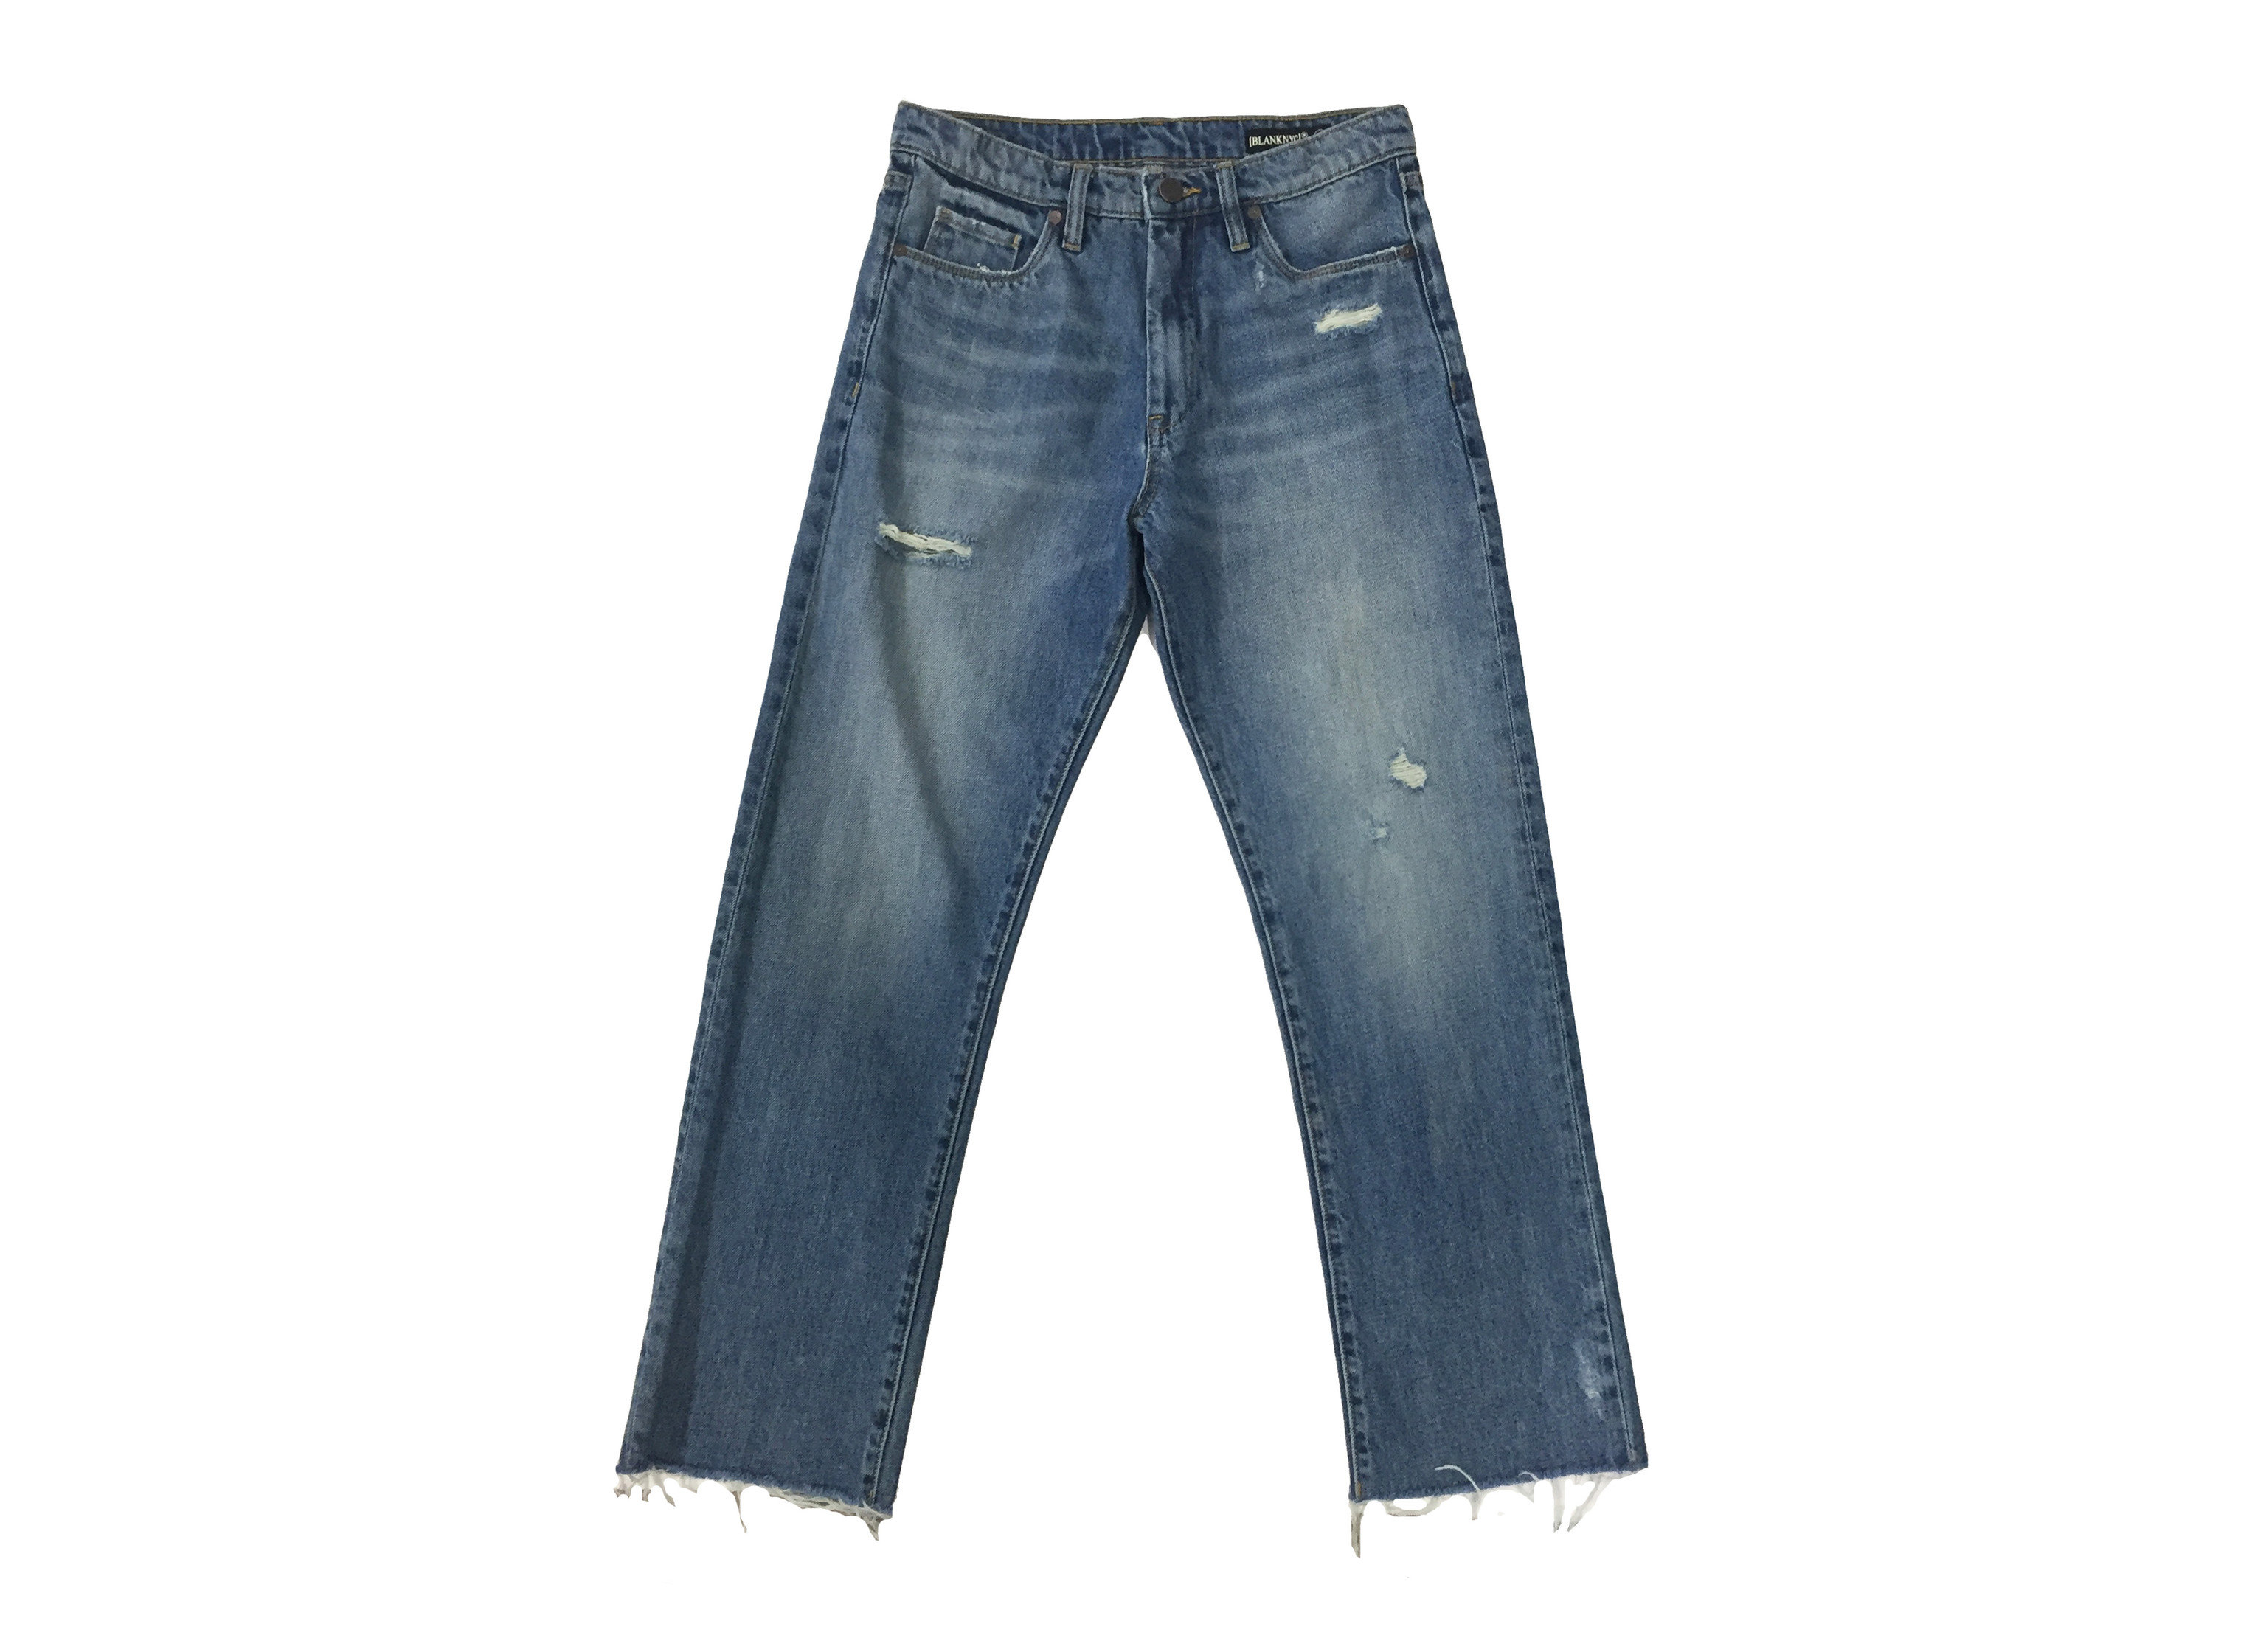 Gift Guides Travel Shop trouser clothing denim jeans trousers